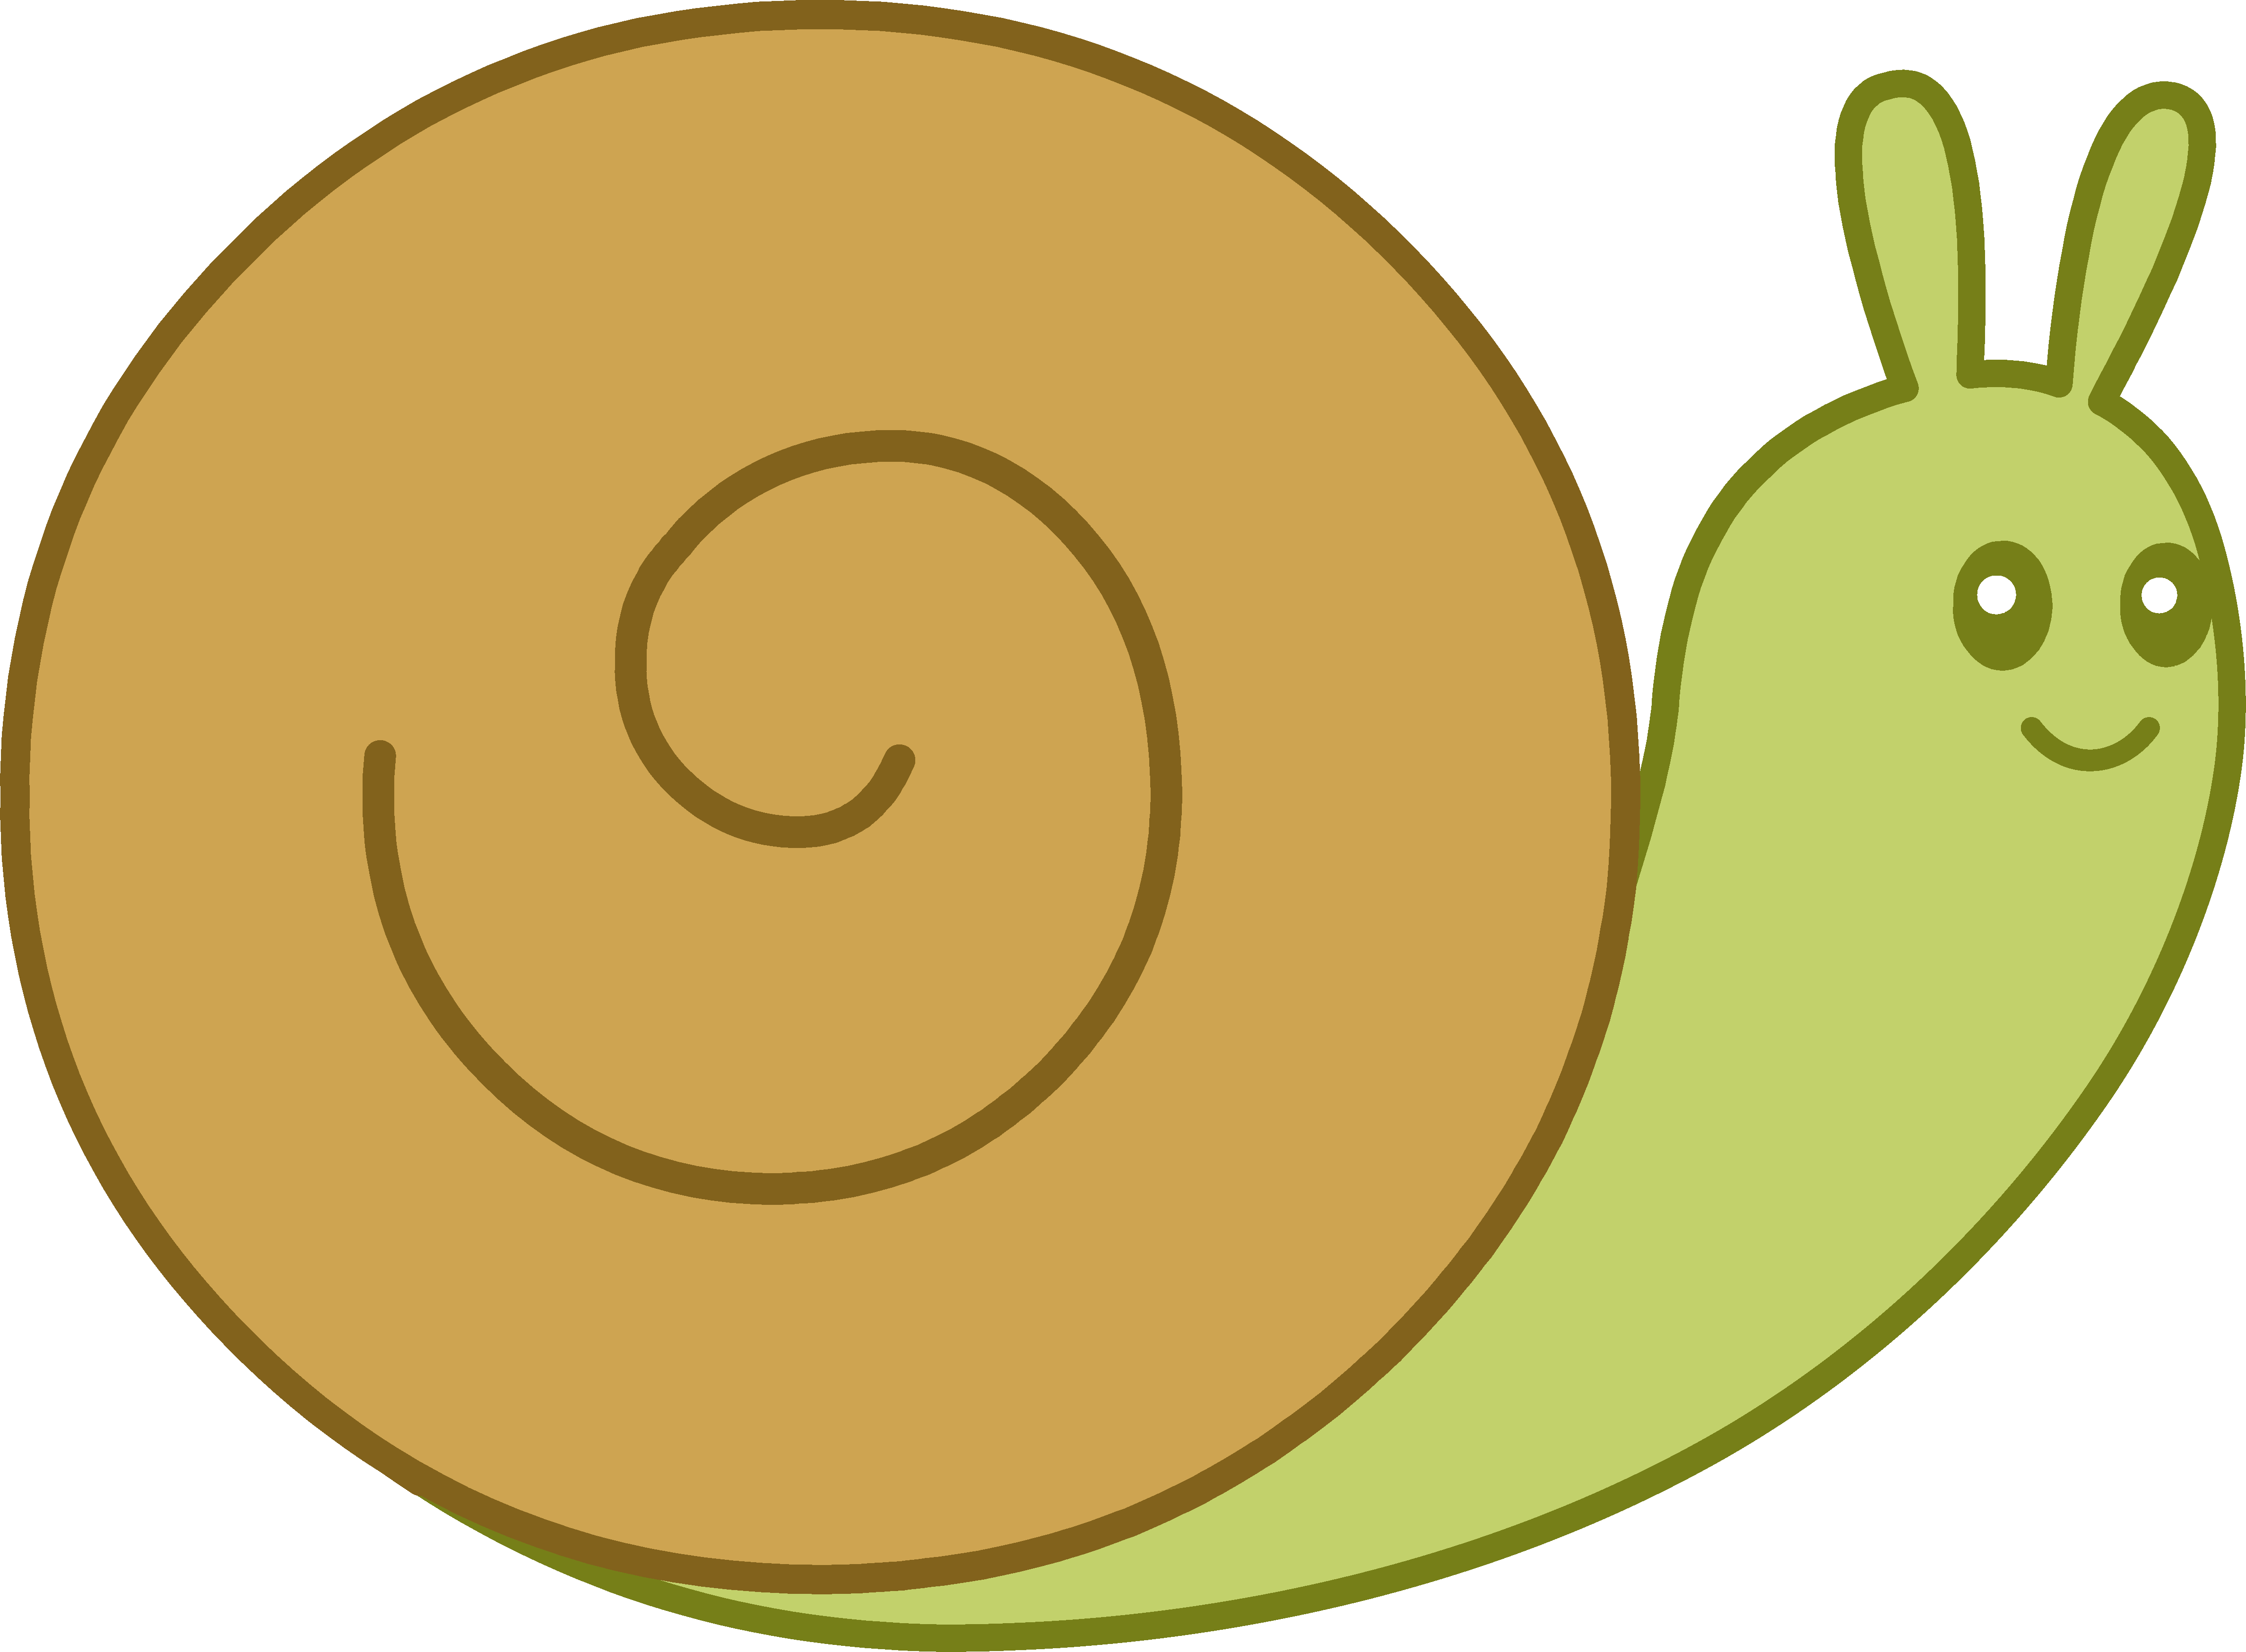 Cute Brown and Green Snail.